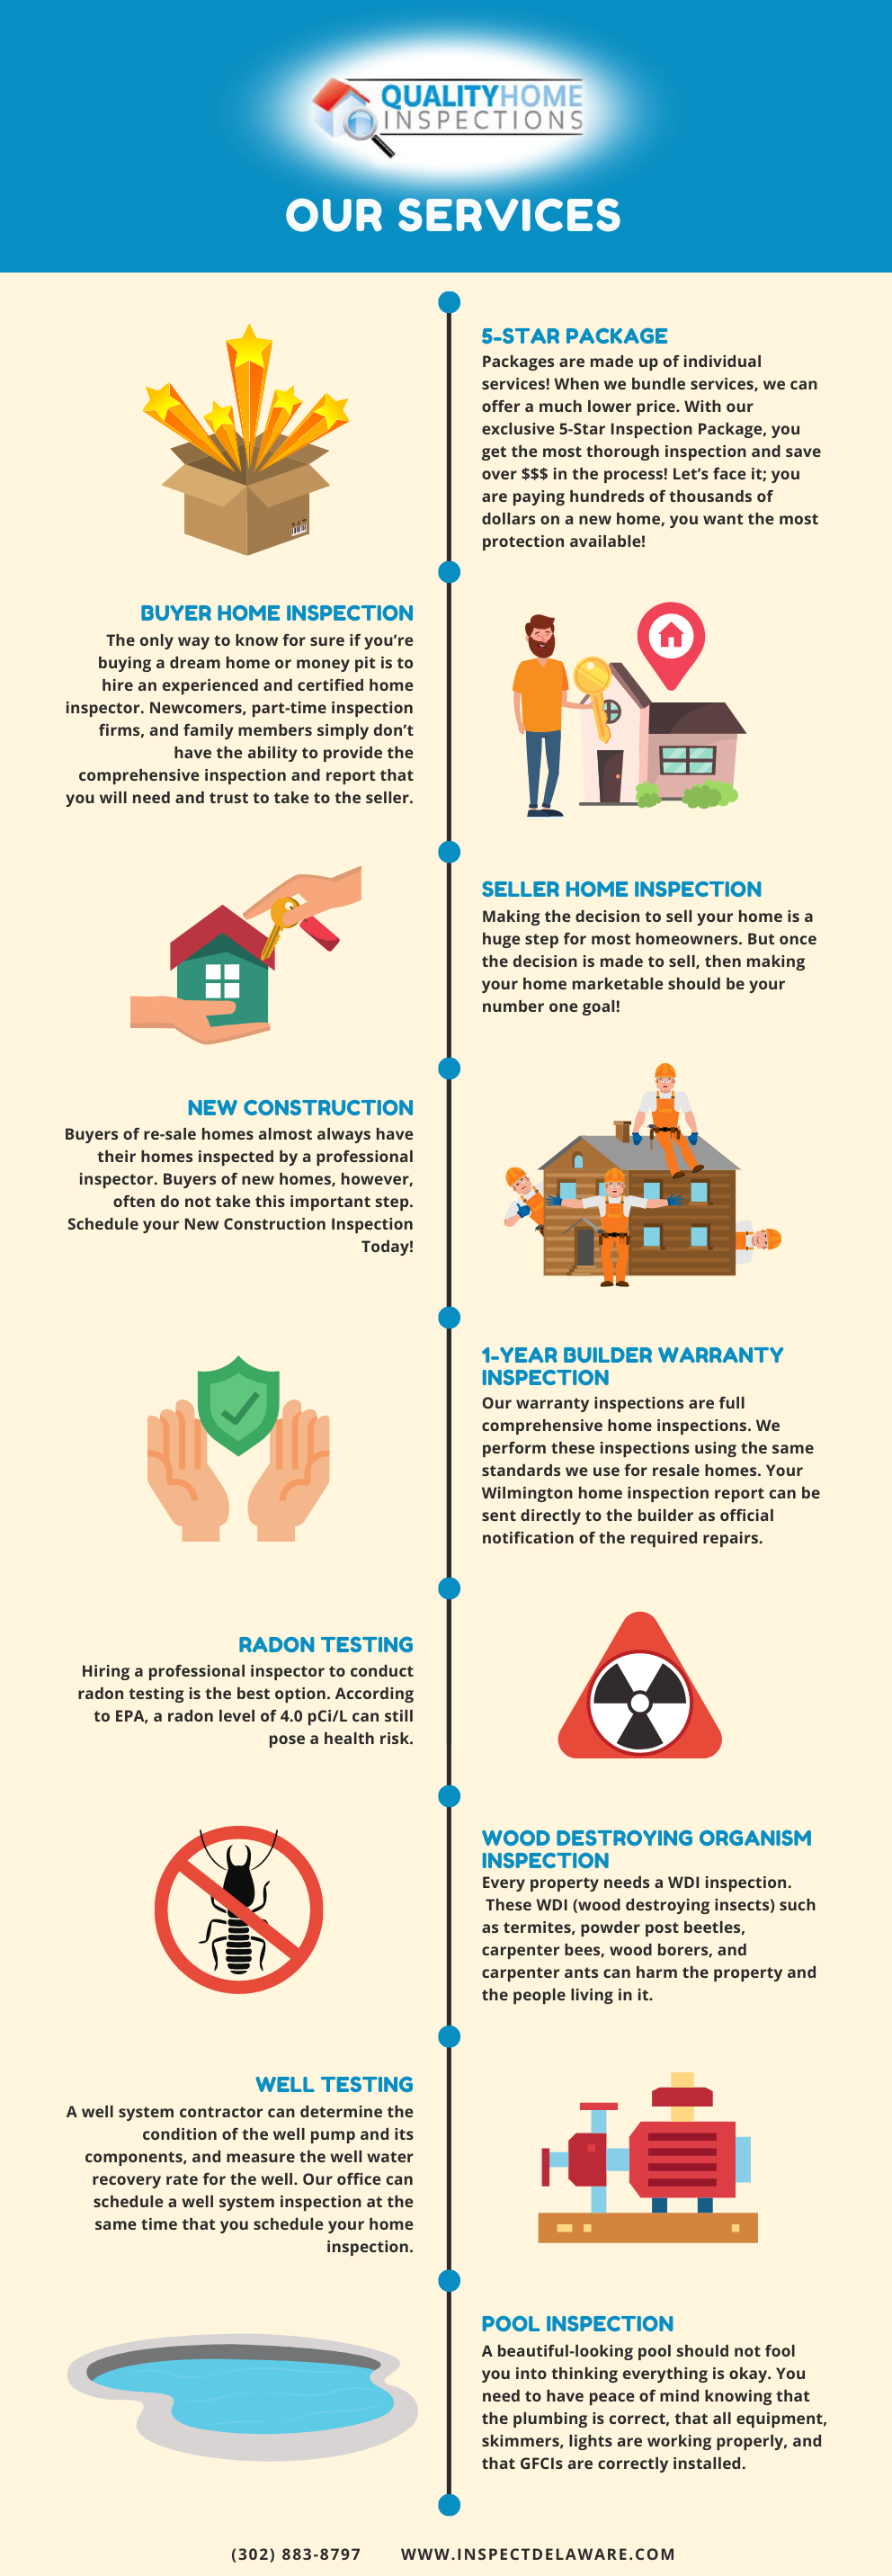 Quality Home Inspections Services Infographic